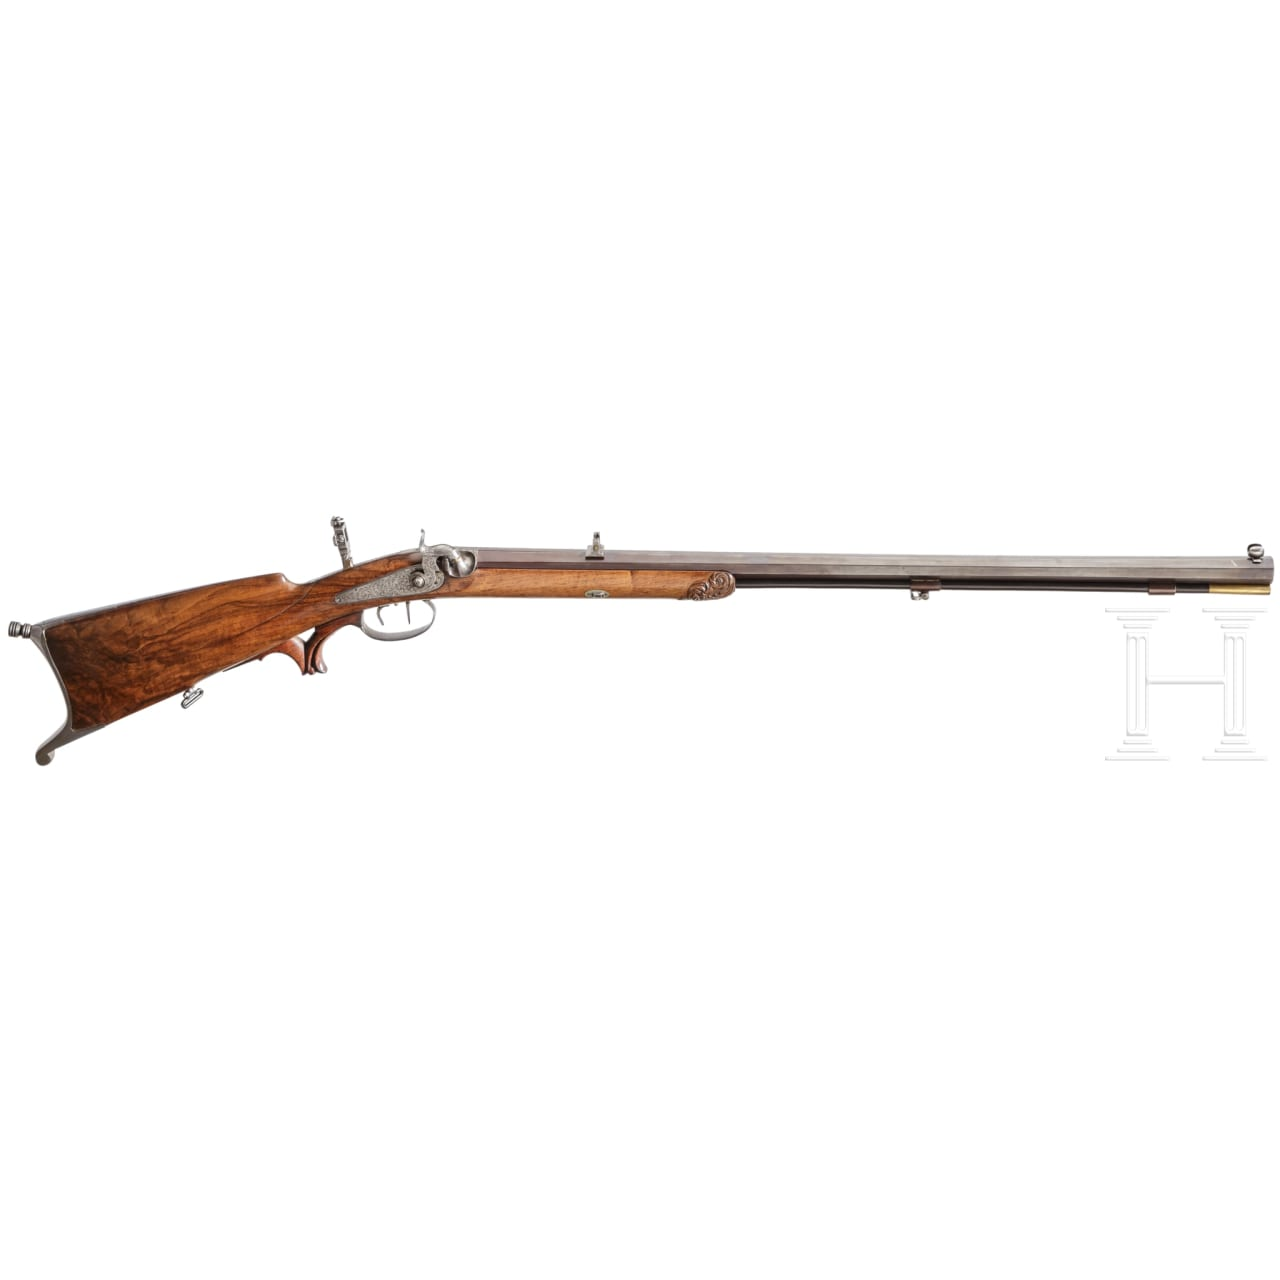 A percussion target rifle by L.H. Damm in Eberfeld, Germany, circa 1840